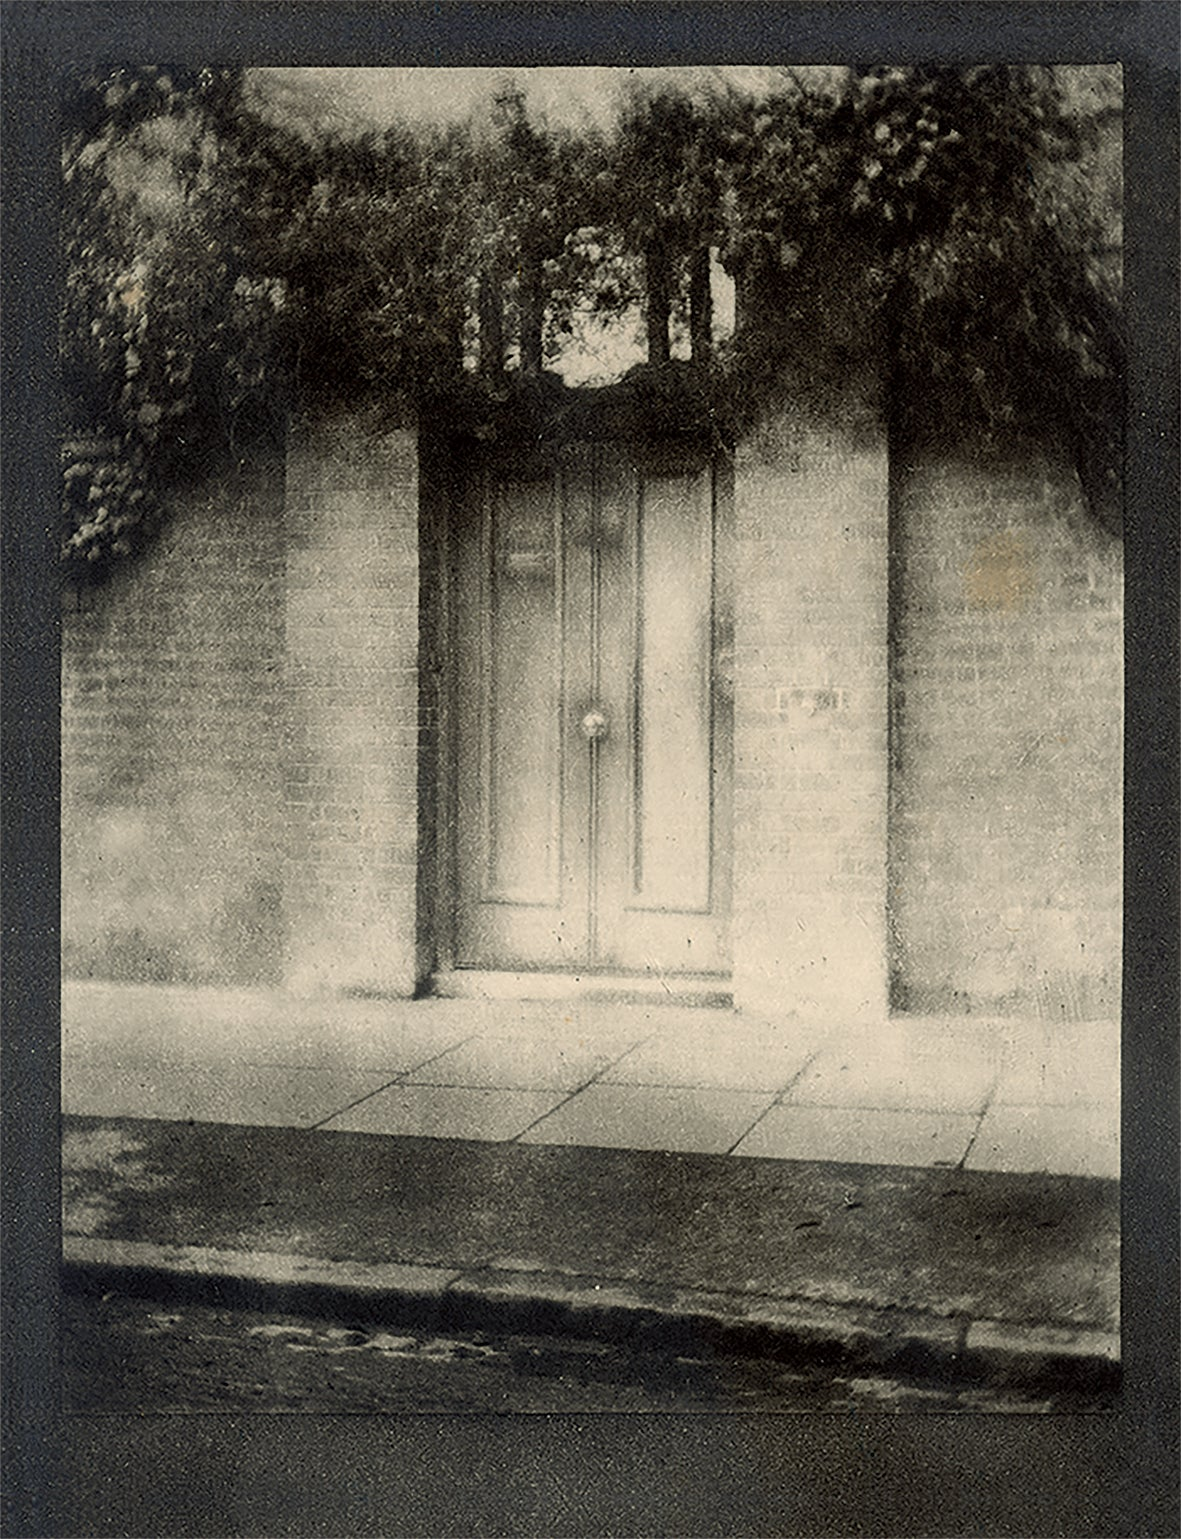 'The Door in the Wall' photograph by Alvin Langdon Coburn